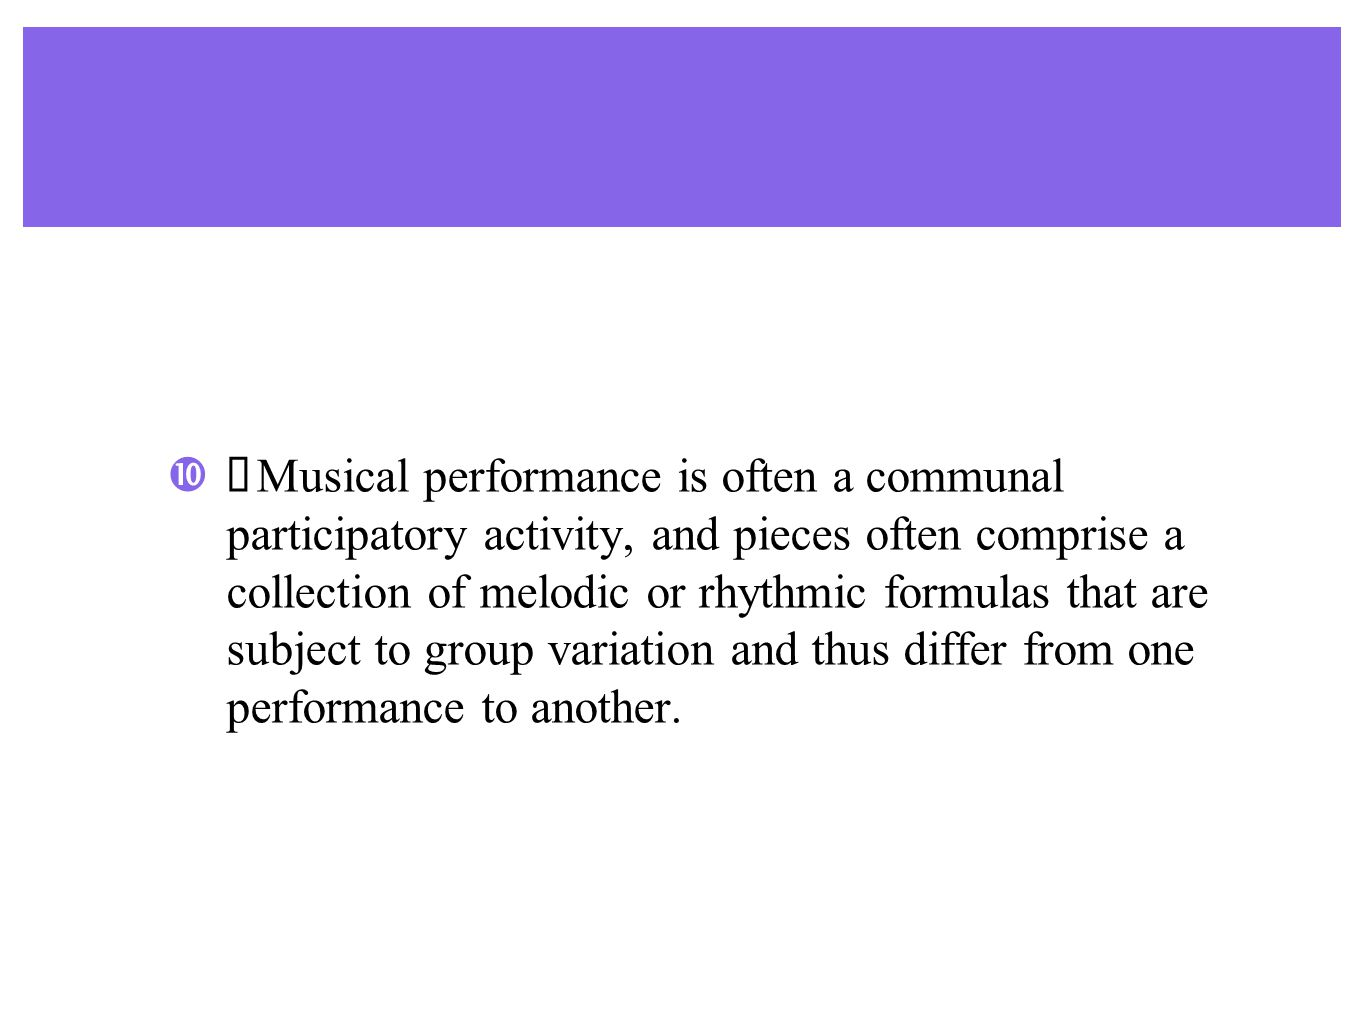 ♣ Musical performance is often a communal participatory activity, and pieces often comprise a collection of melodic or rhythmic formulas that are subject to group variation and thus differ from one performance to another.